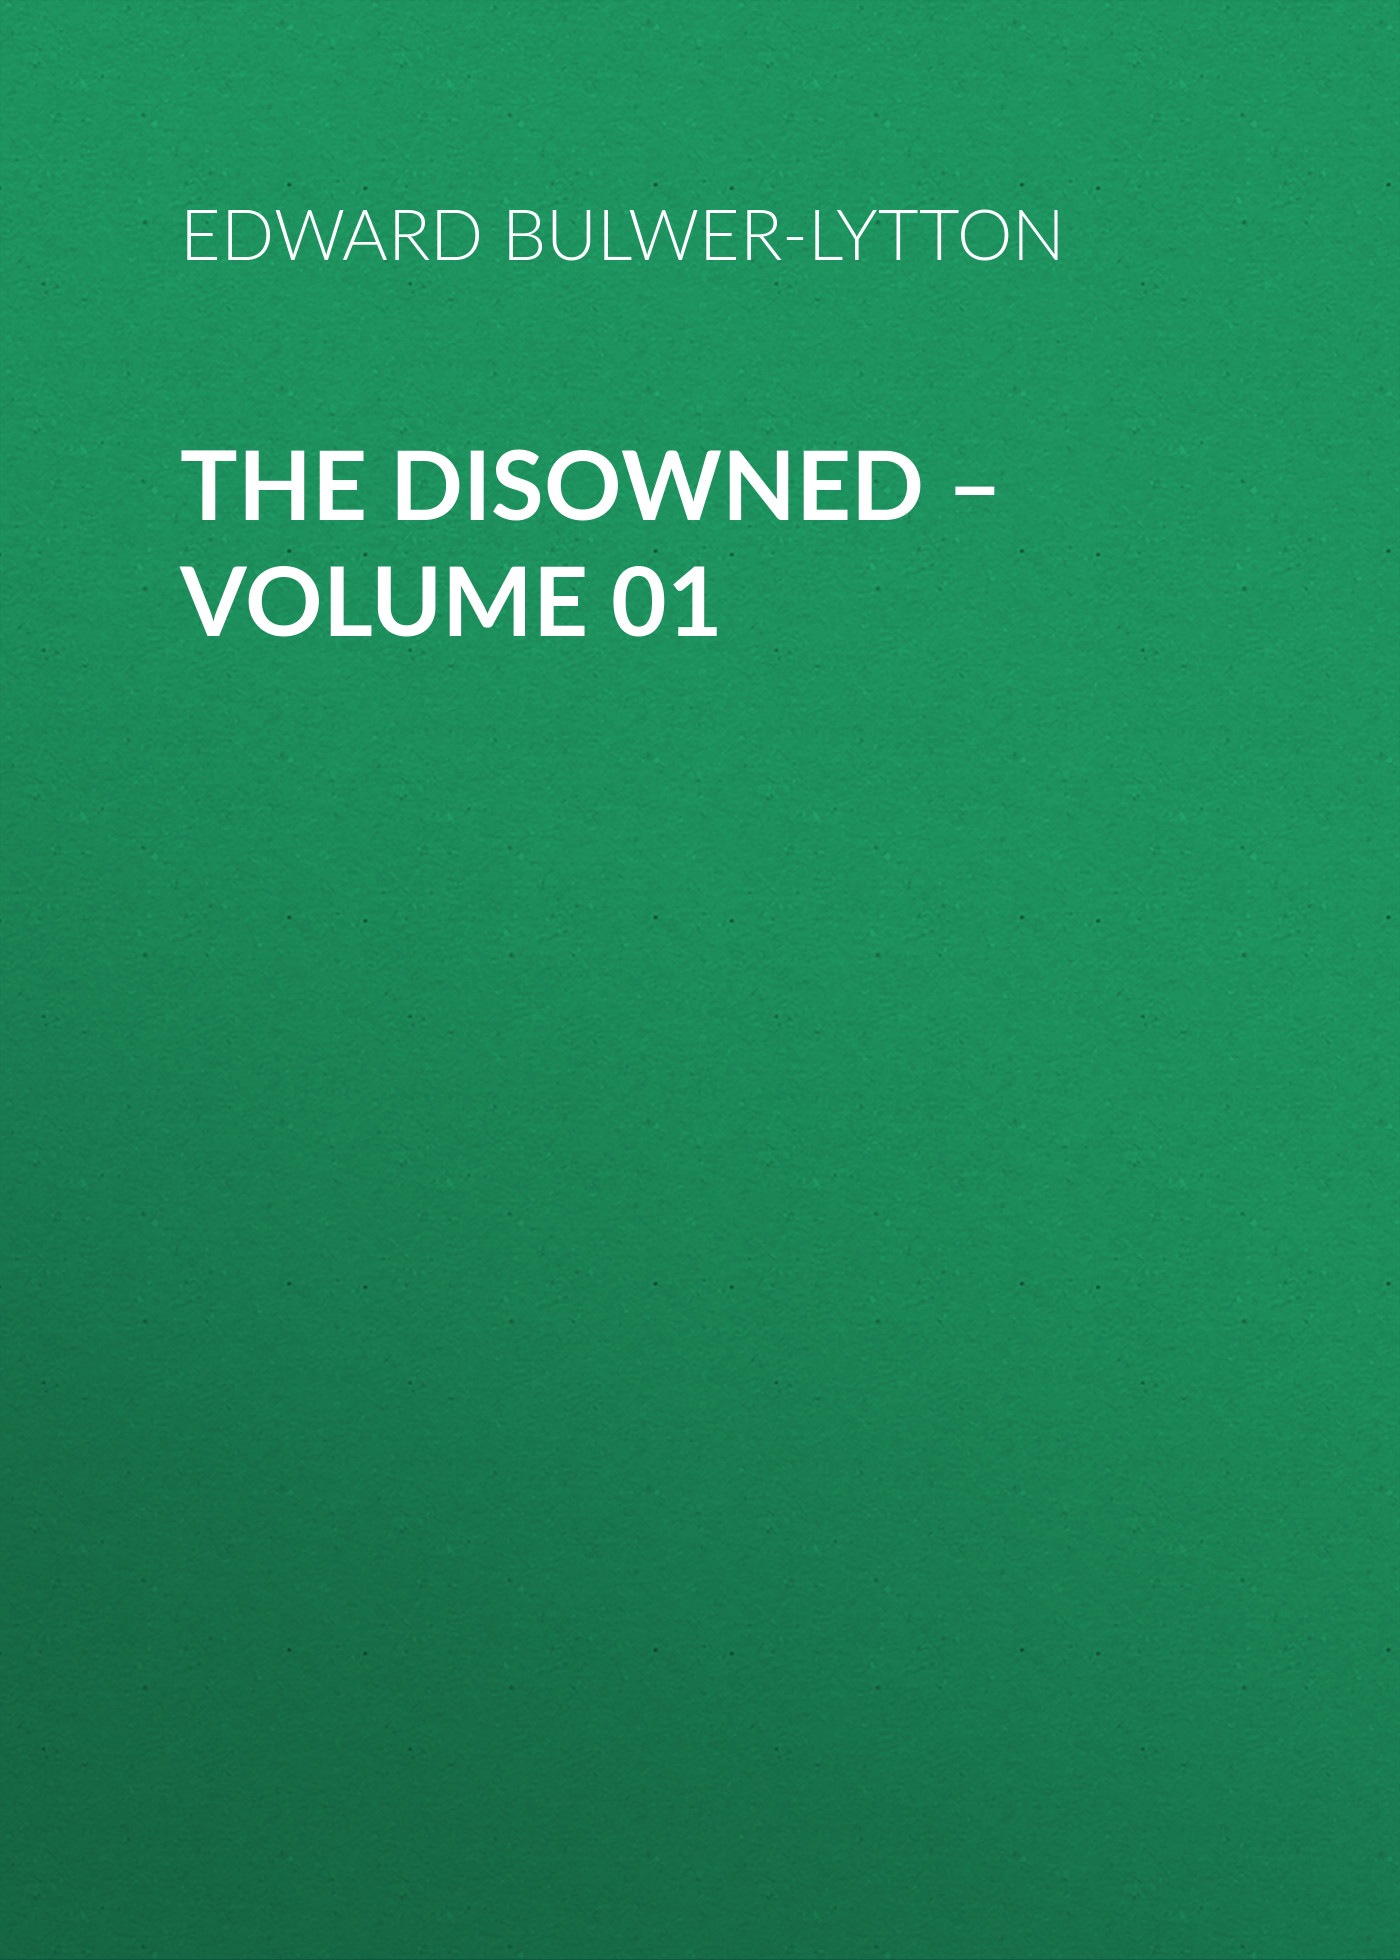 Эдвард Бульвер-Литтон The Disowned – Volume 01 эдвард бульвер литтон devereux volume 01